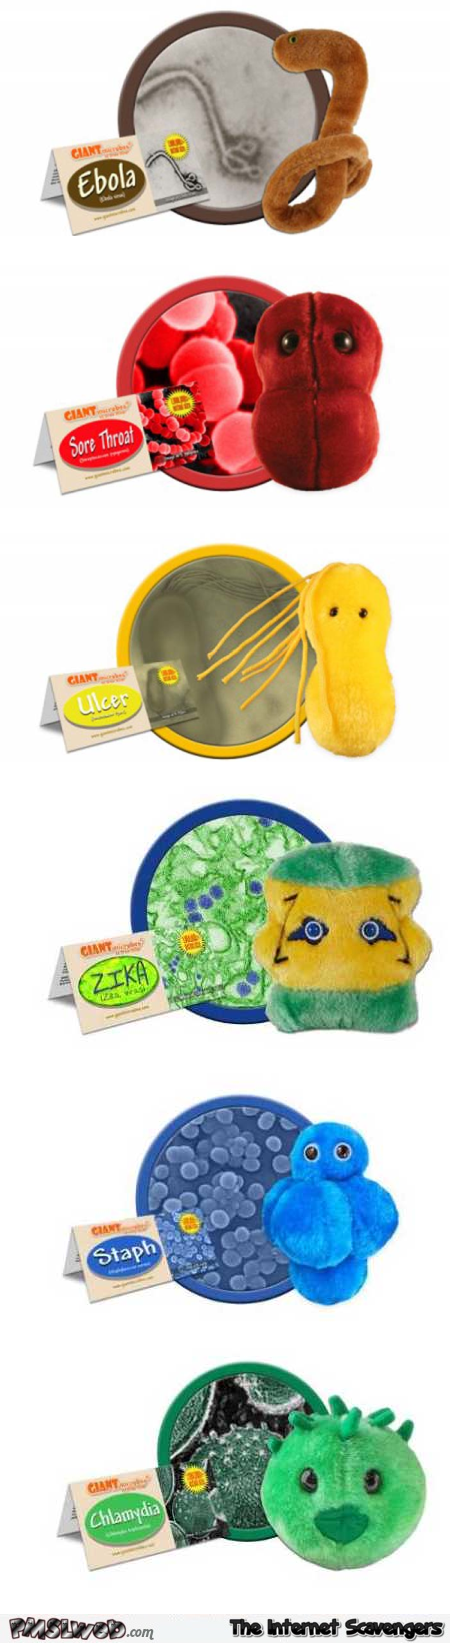 Giant Microbes funny soft toys @PMSLweb.com